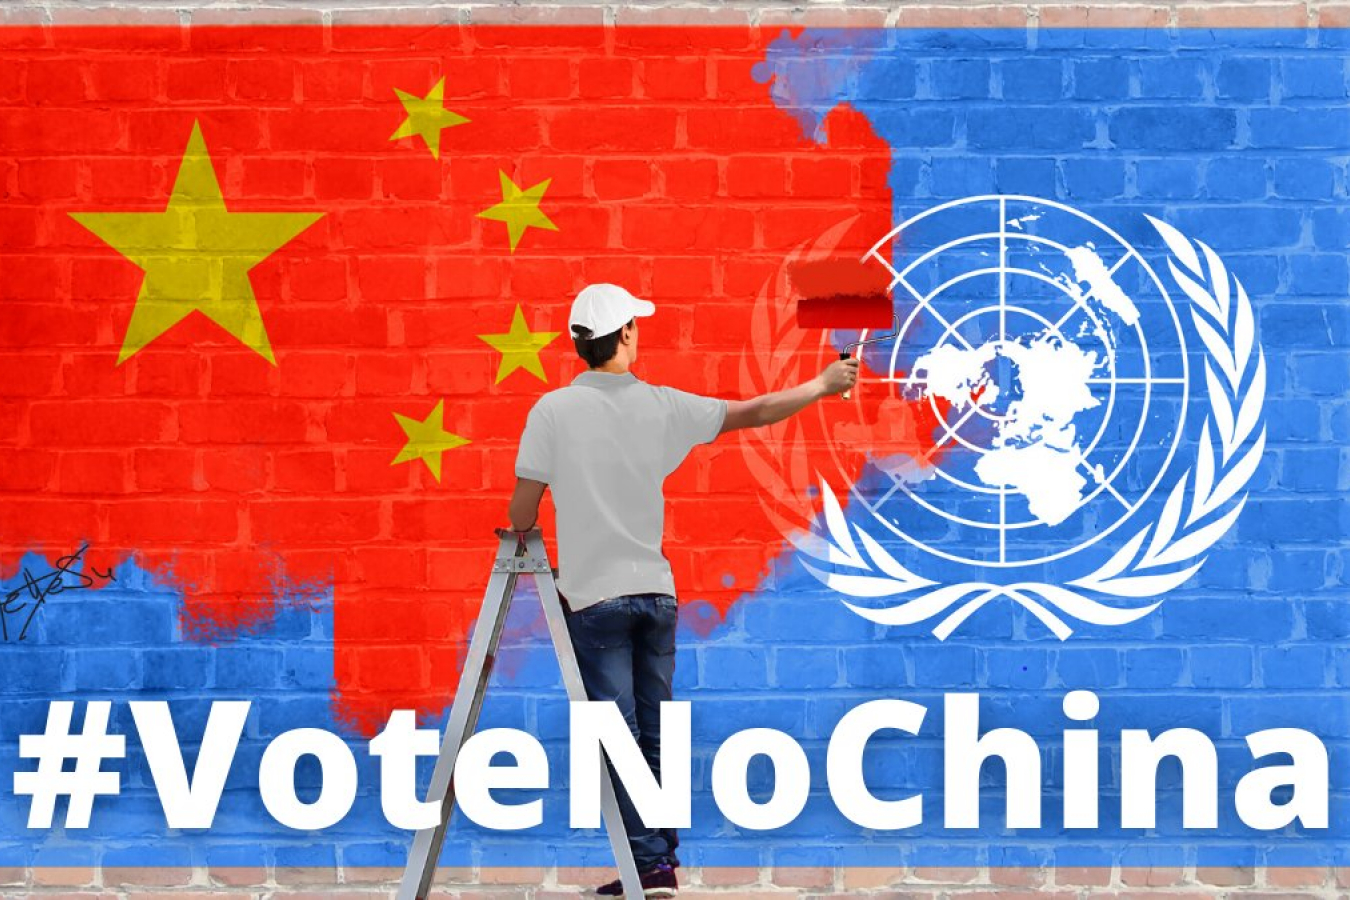 #voternochina Uyghur groups